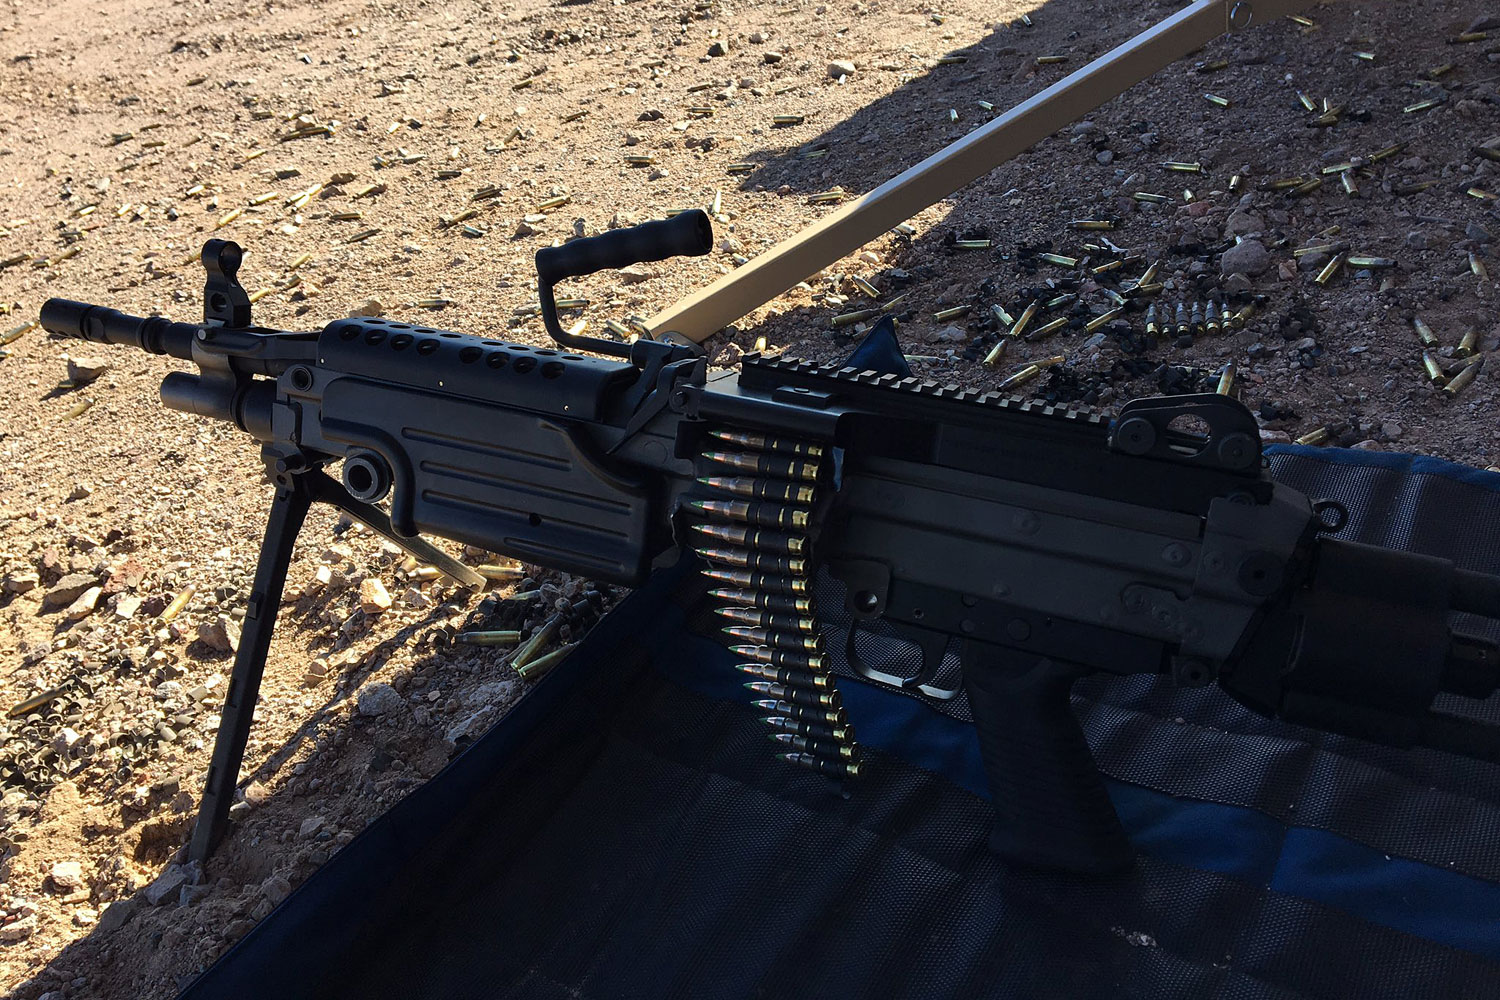 FN, the maker of the U.S. military's M249 squad automatic weapon, introduced the M249S Para, Jan. 16, 2017, during range day outside Las Vegas at SHOT Show 2017. Military.com photo